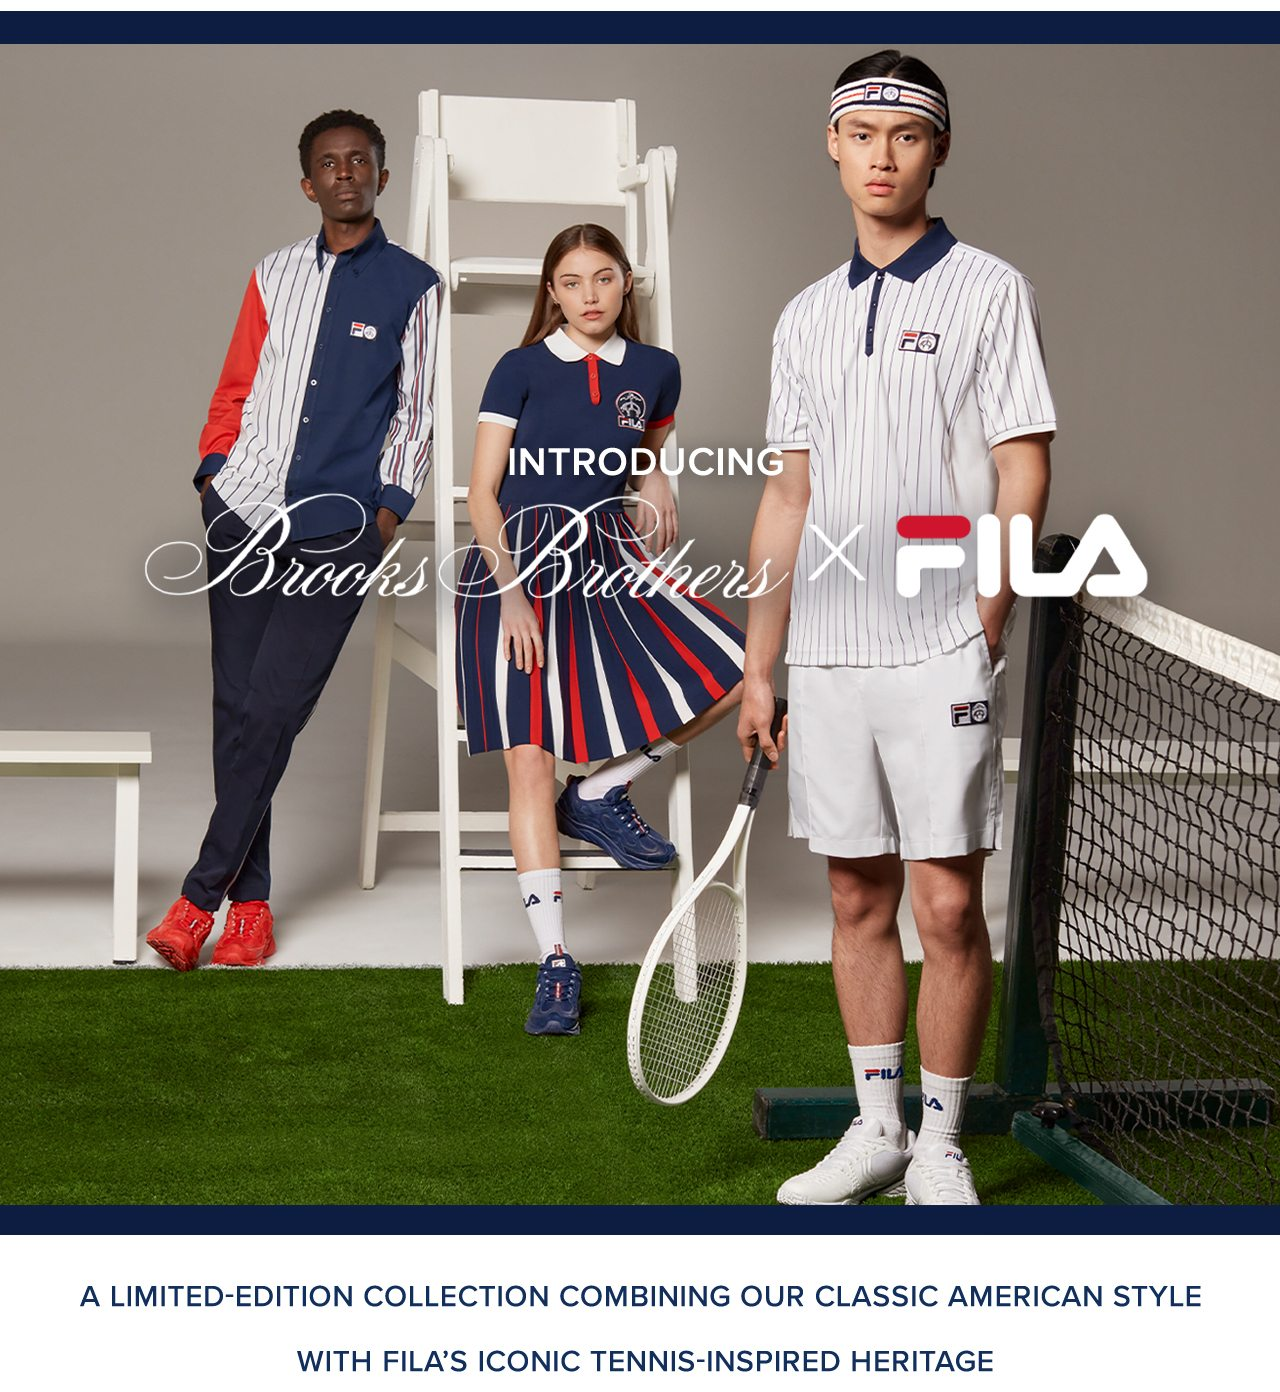 A Limited-Edition Collection Combining Our Classic American Style With Fila's Iconic Tennis-Inspired Heritage